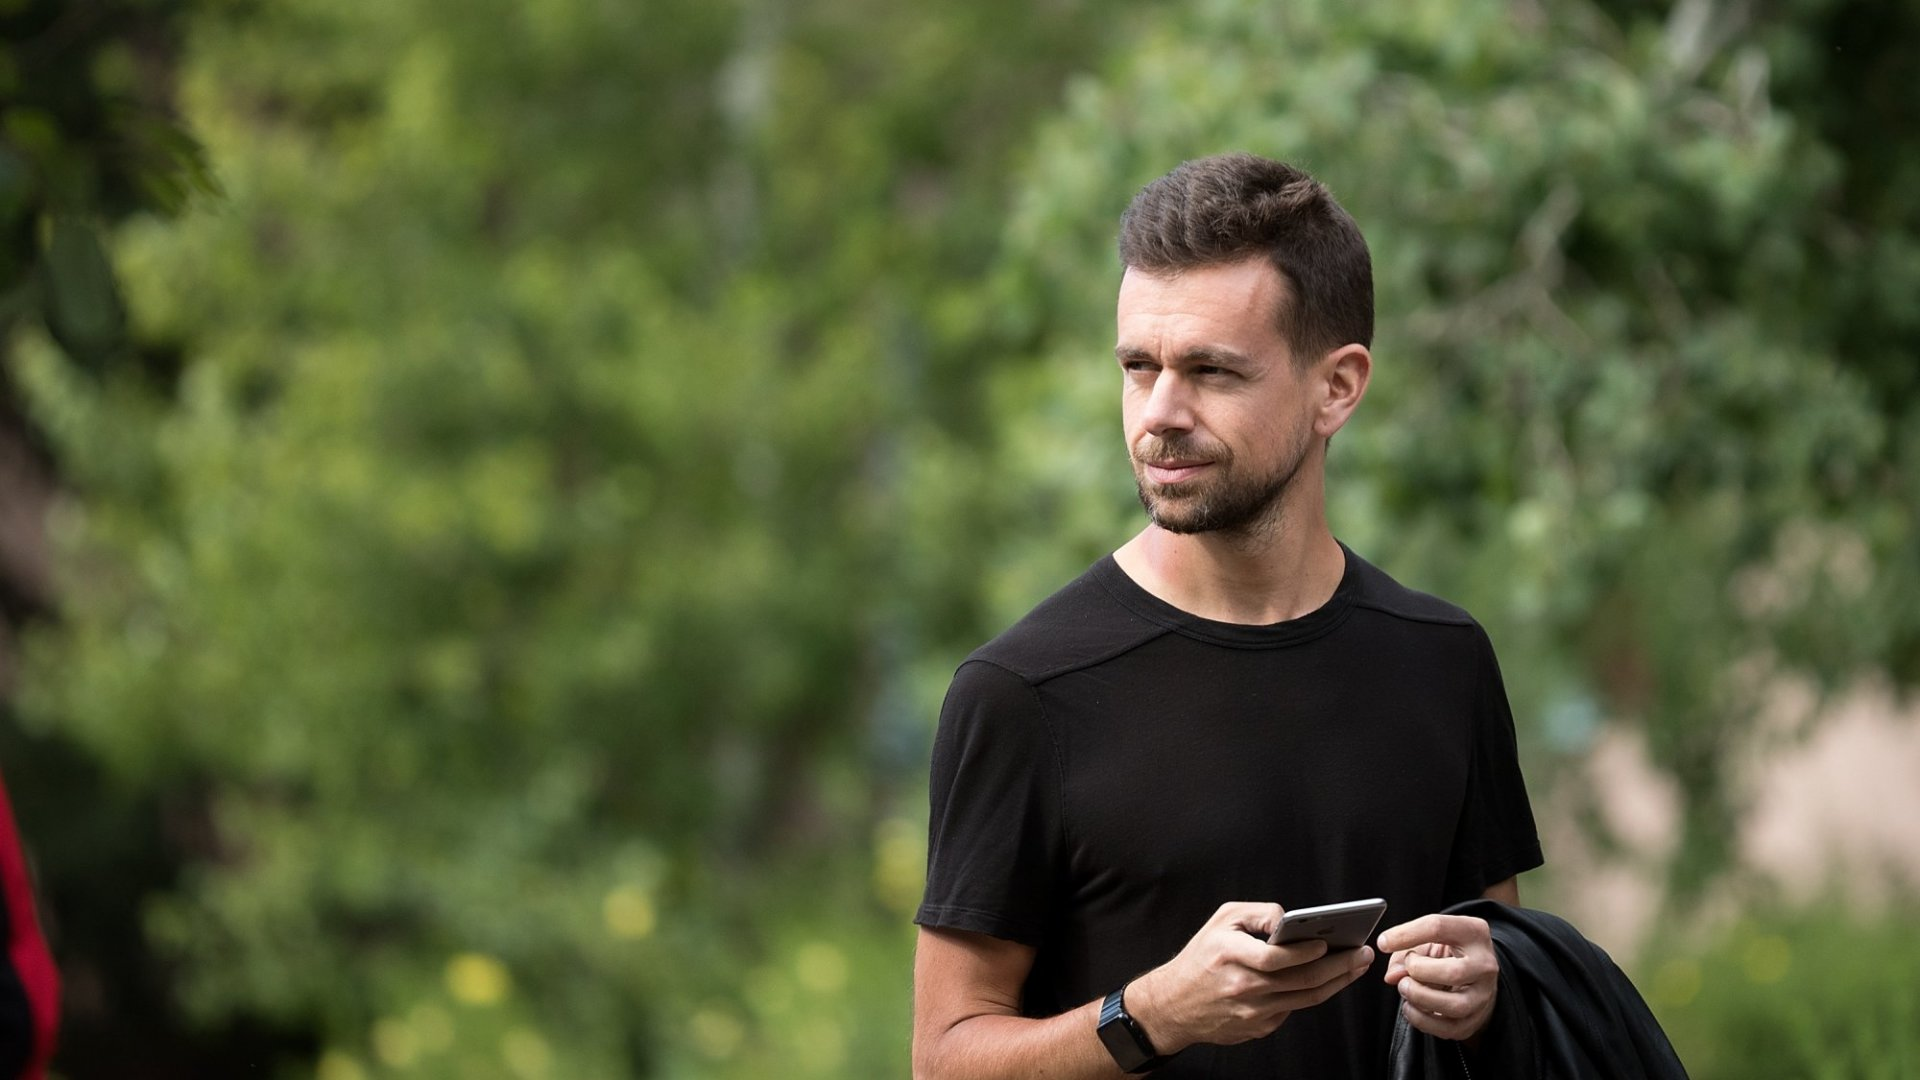 Jack Dorsey Unfollowed Mark Zuckerberg on Twitter. But First He Made Sure Everyone Would Notice